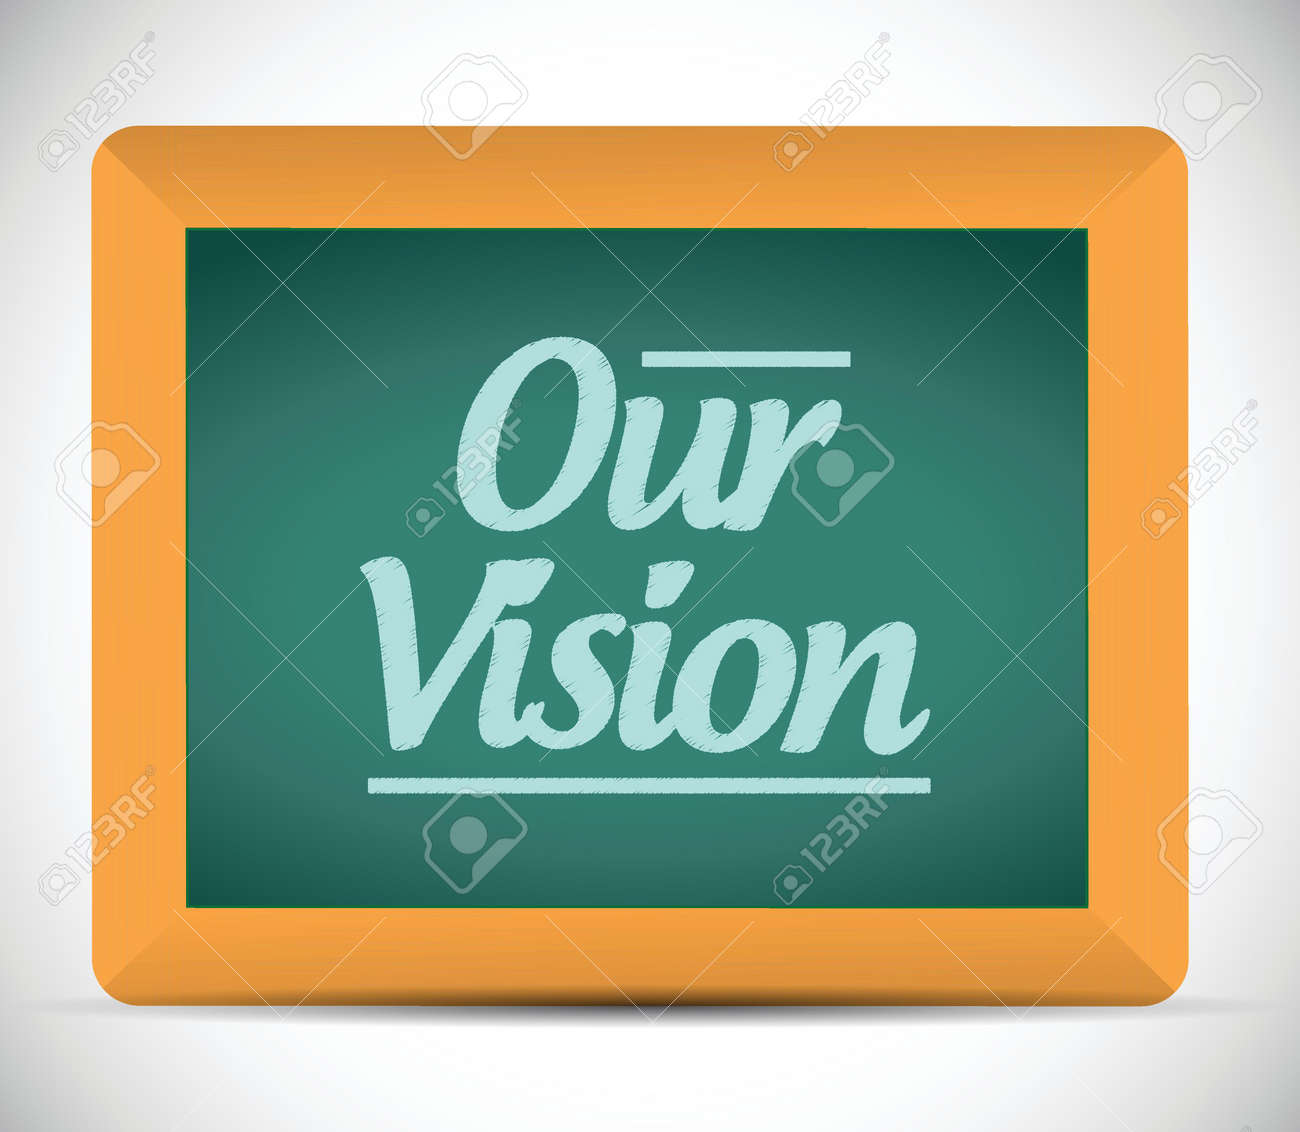 our vision message illustration design graphic. chalkboard Stock Vector - 23211118